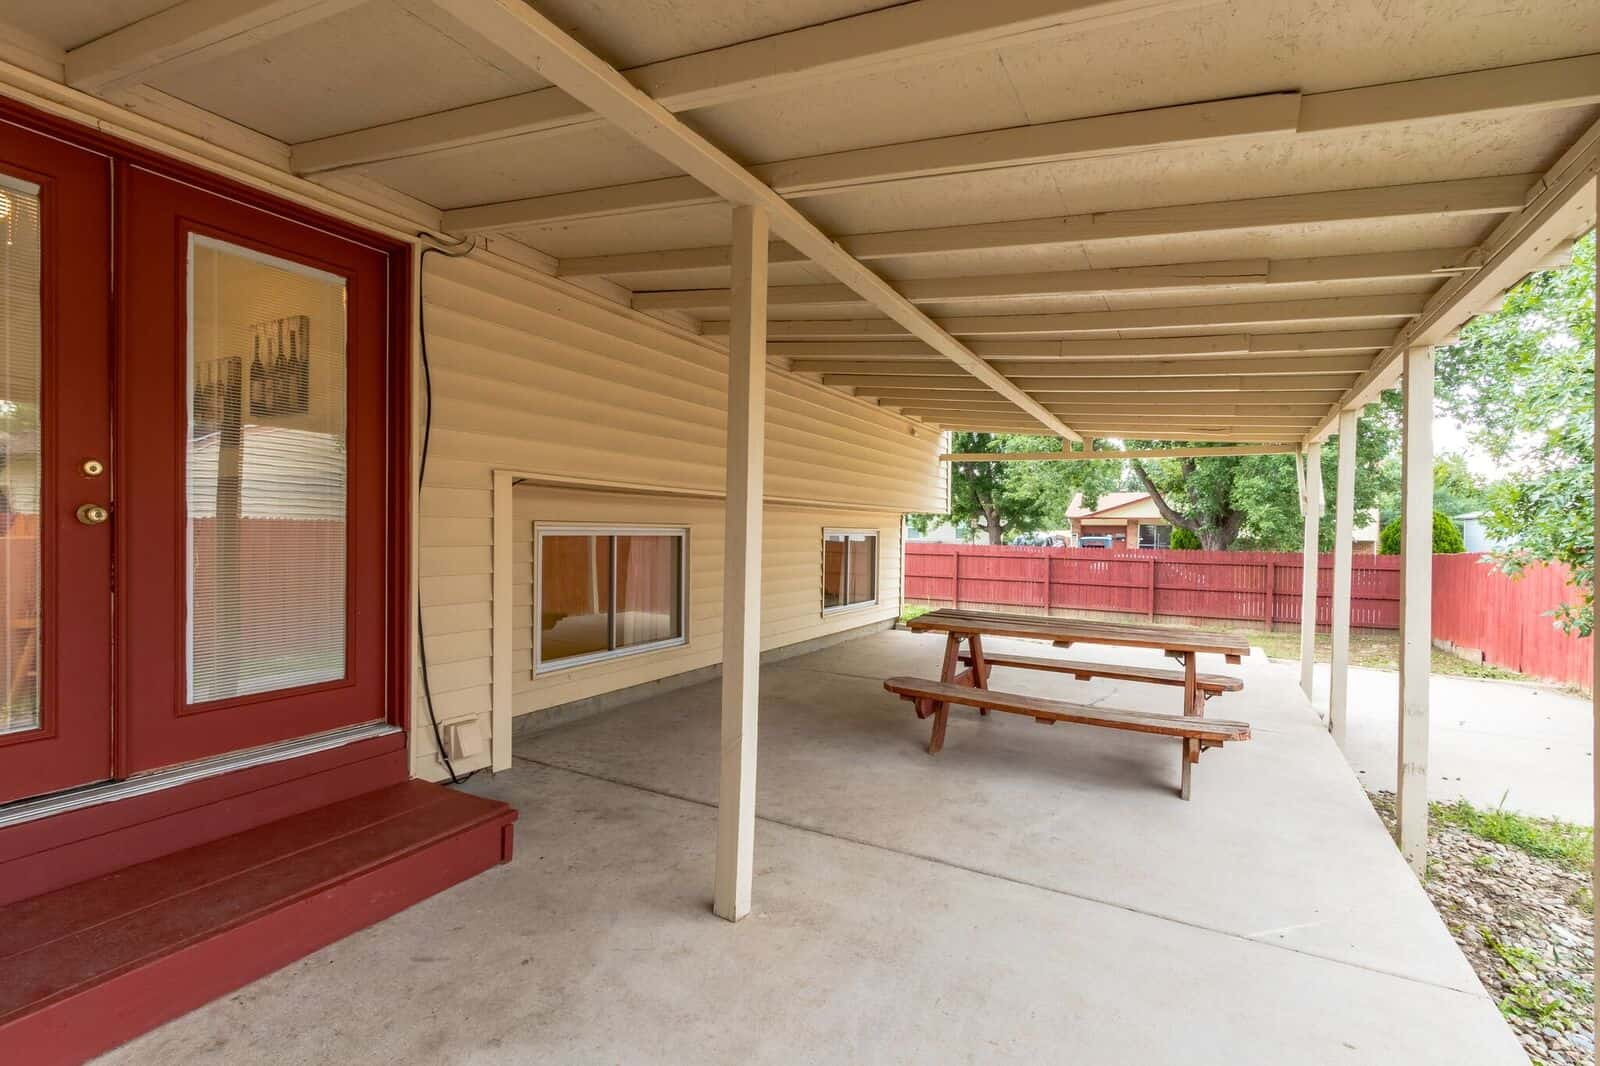 Doors from Kitchen to Large Covered Patio and Fenced Yard